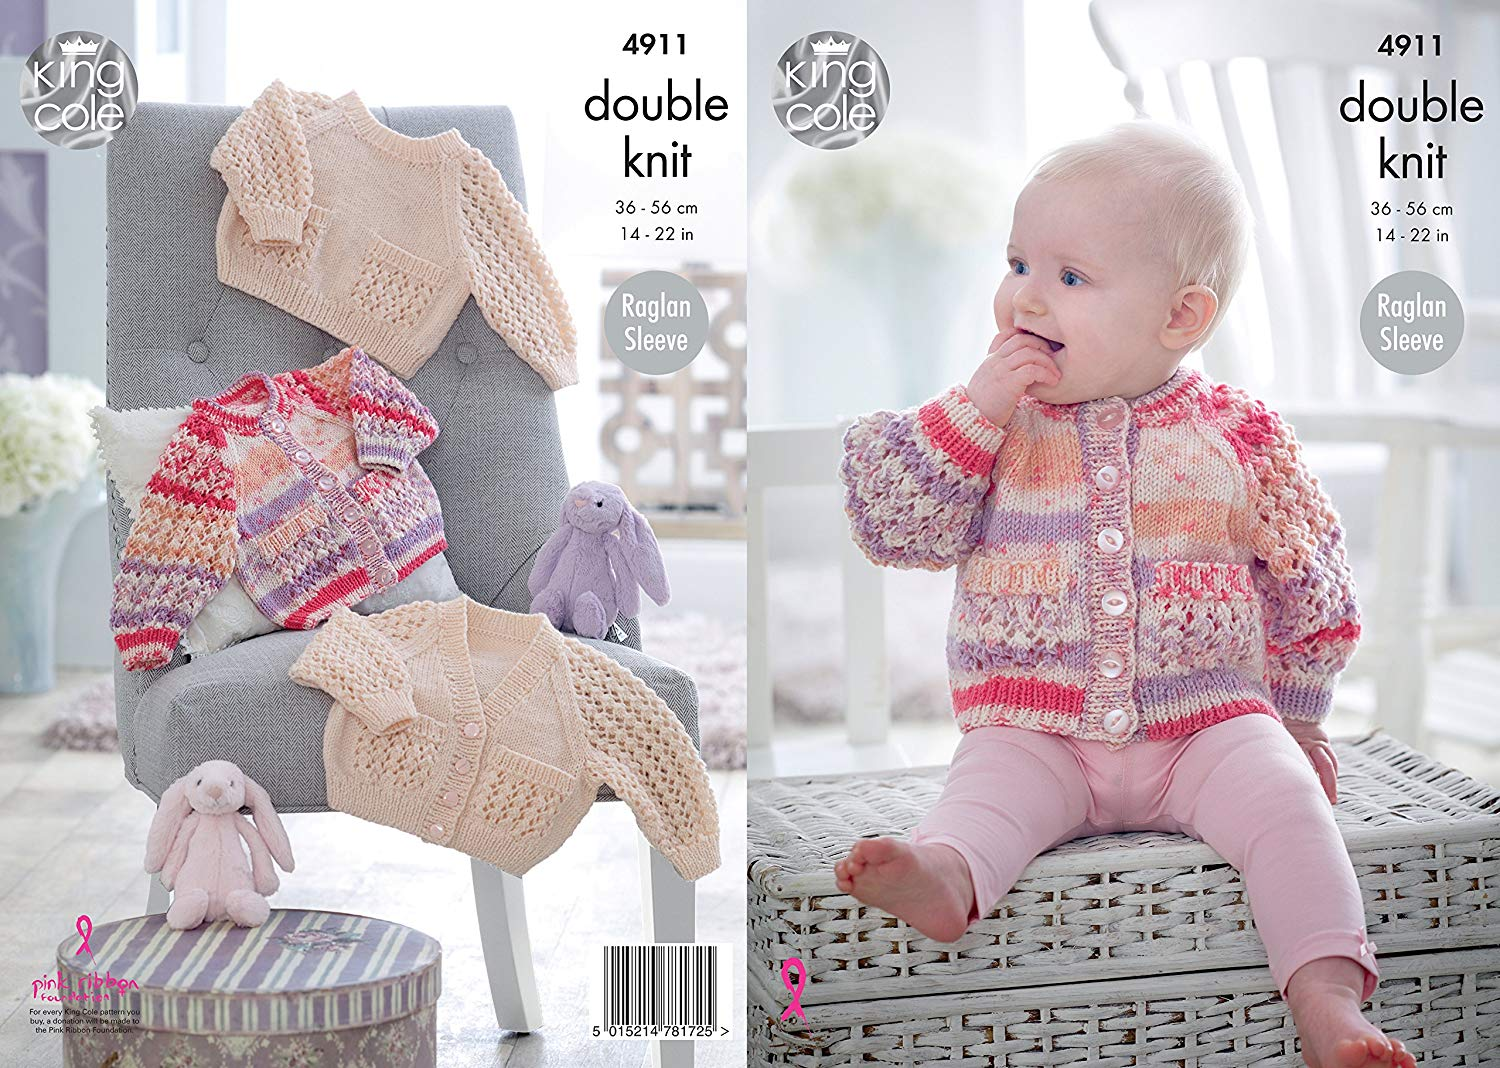 12a09badb38353 Get Quotations · King Cole Baby Double Knitting Pattern Raglan Sleeve  Cardigans   Sweater (4911)